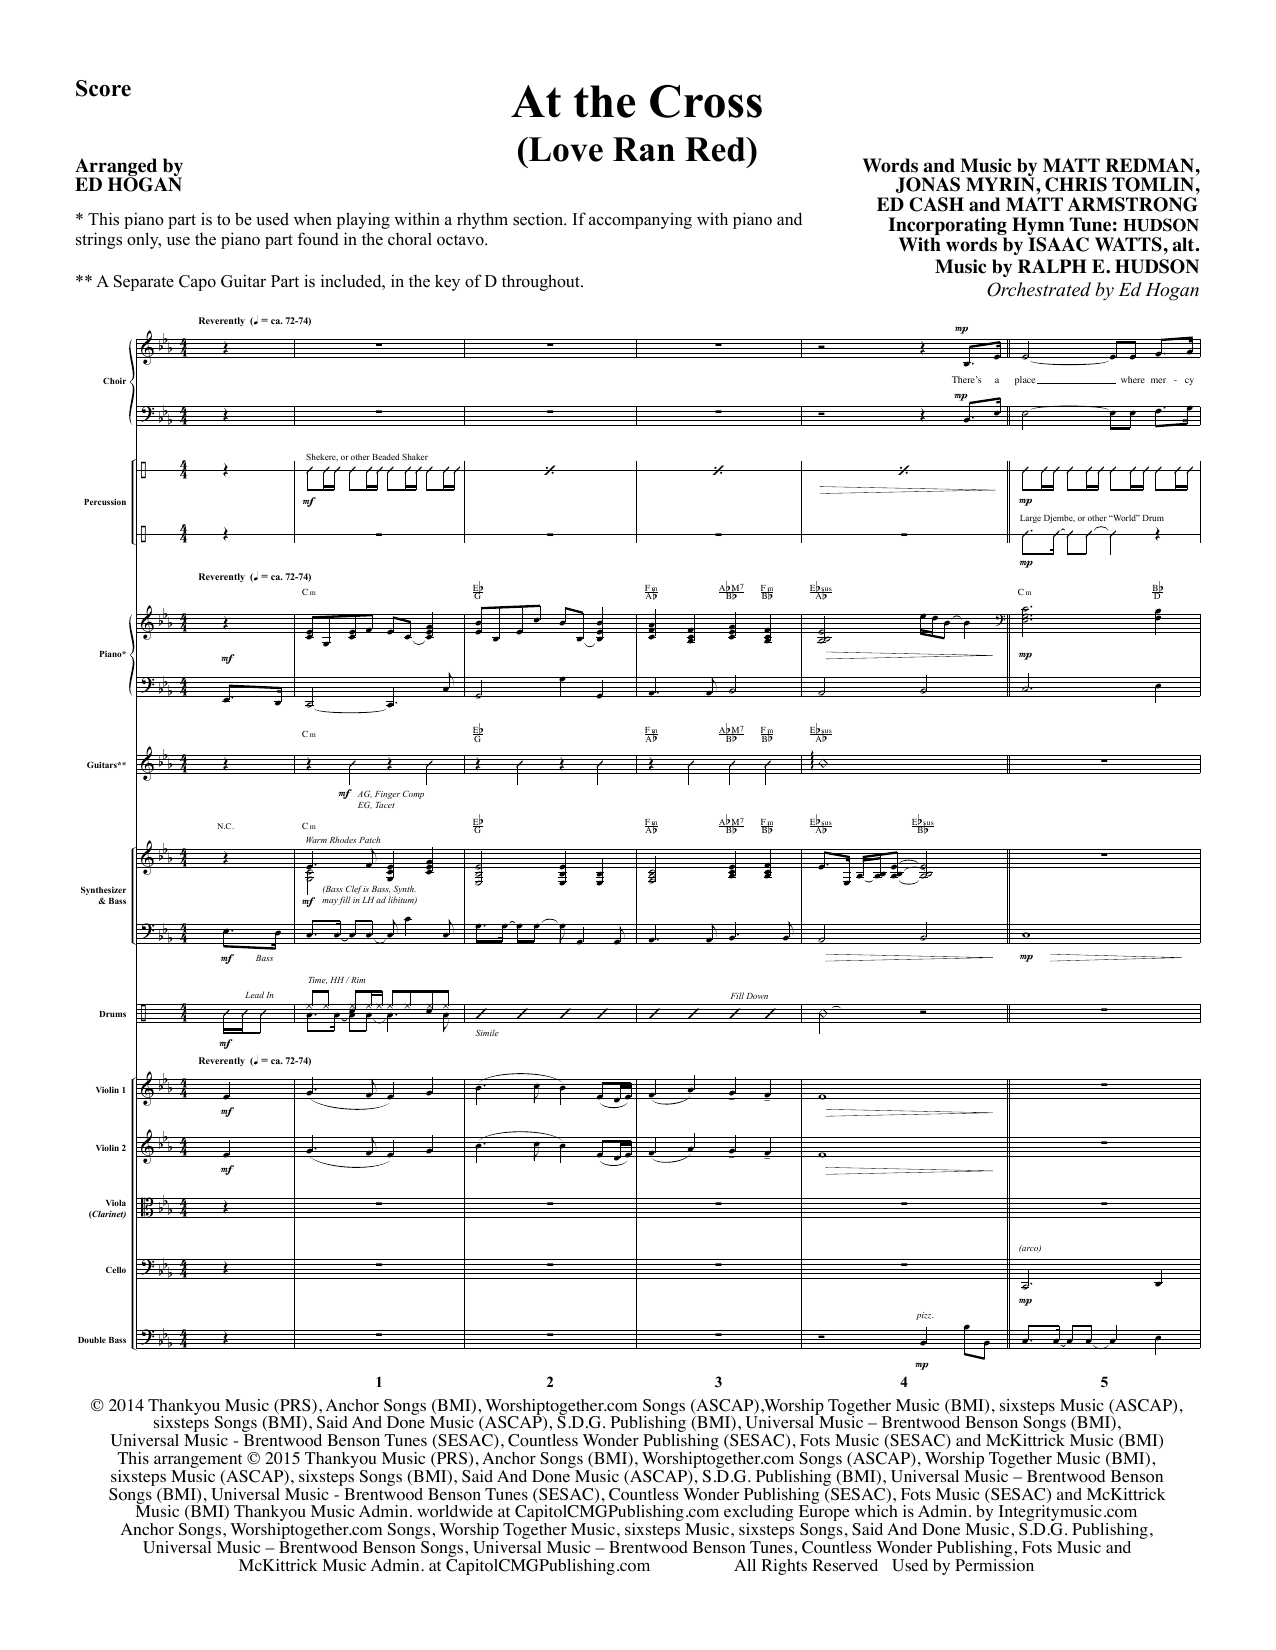 Ed Hogan At the Cross - Full Score sheet music notes and chords. Download Printable PDF.